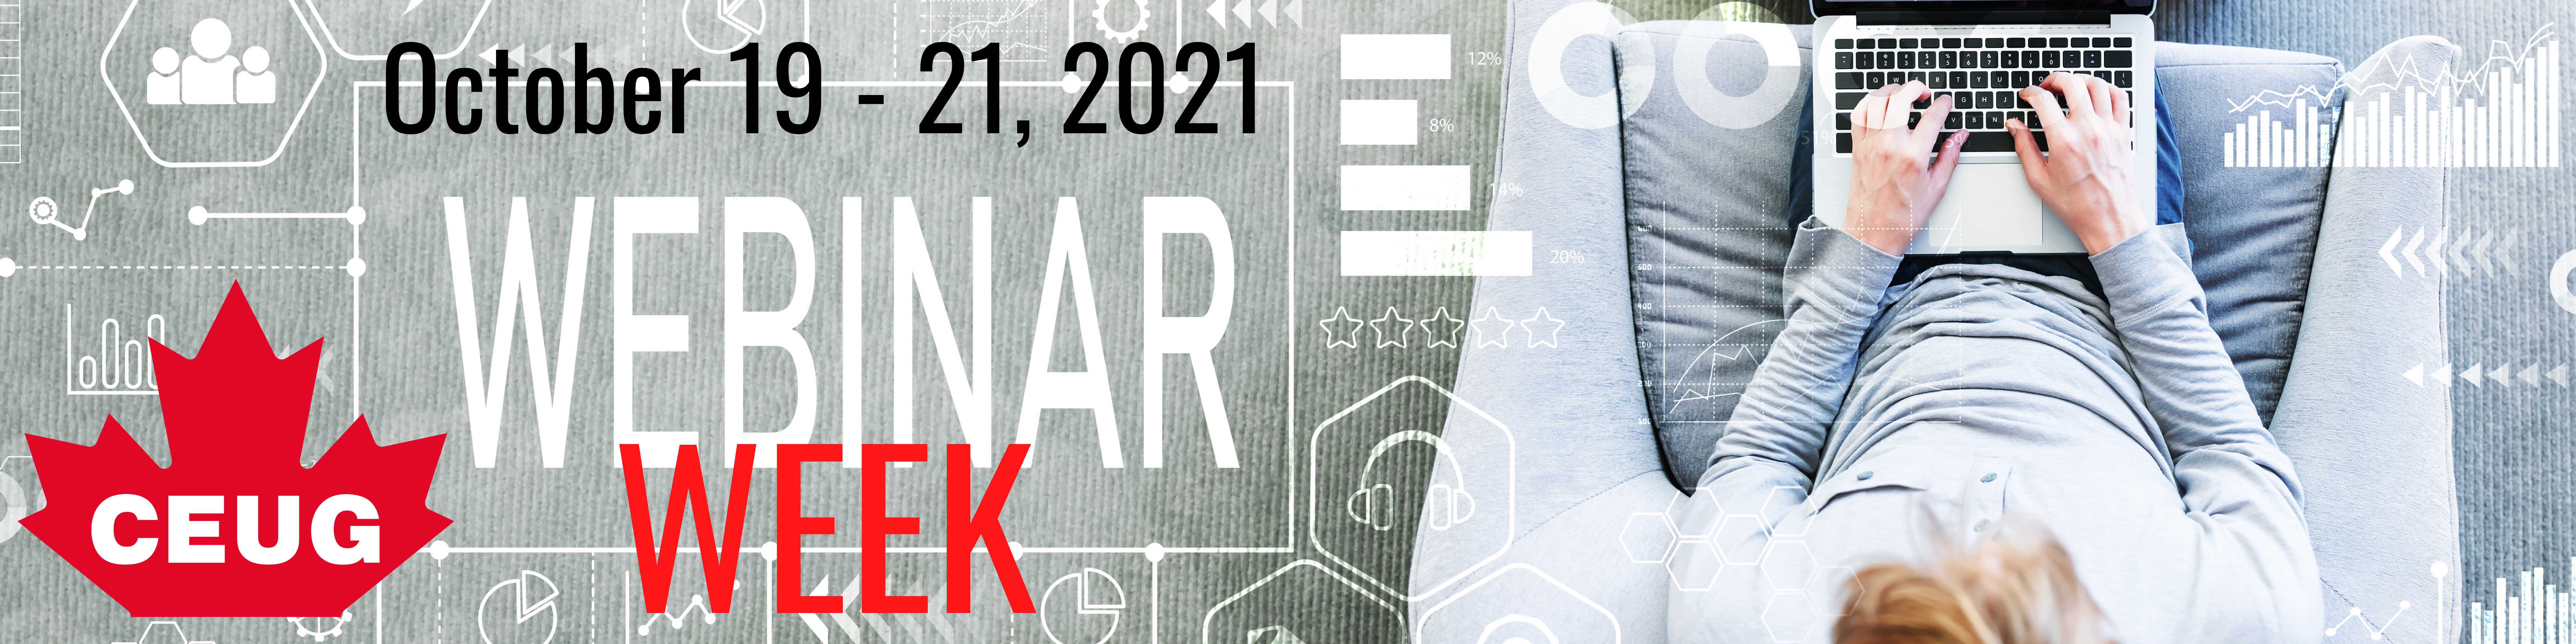 Click Here to Find Out More About the CEUG 2021 Virtual Event